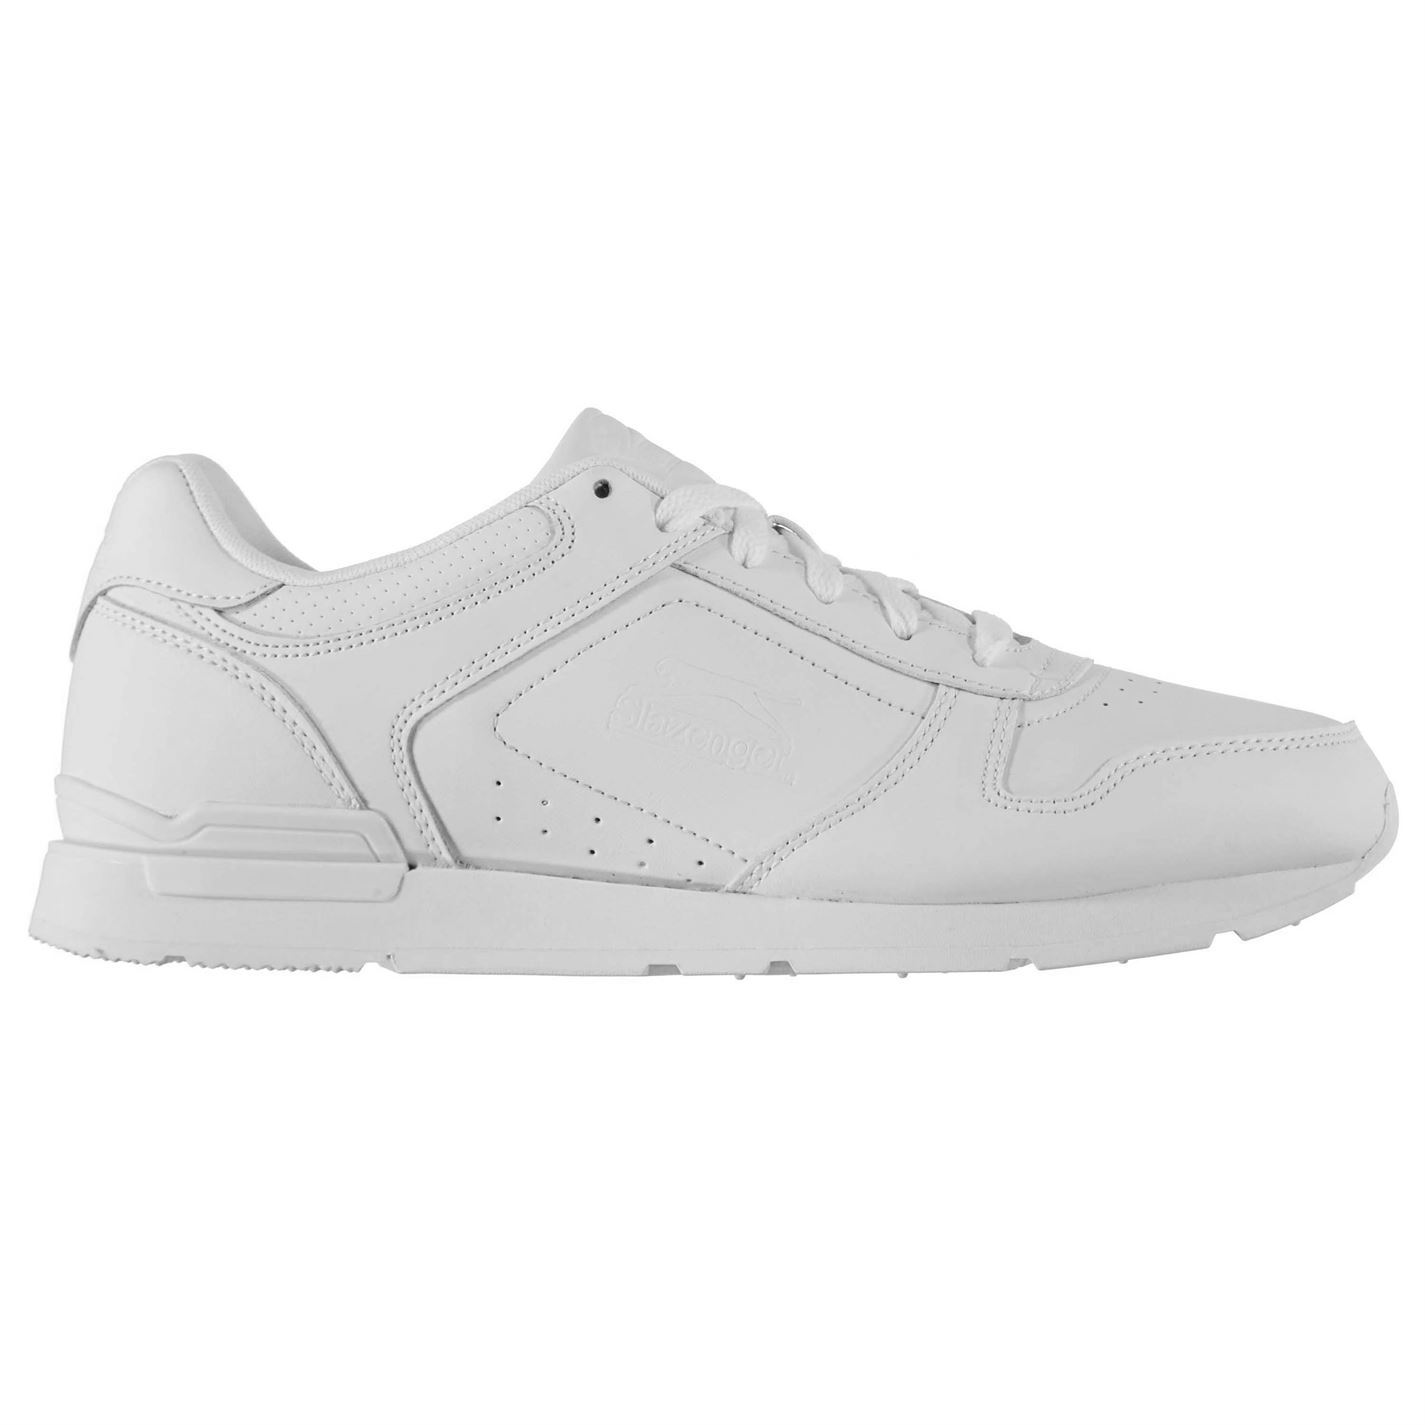 d8f030d73e8 Image is loading Slazenger-Classic-Trainers-Pumps-Running-Sneakers-Gents- Mens